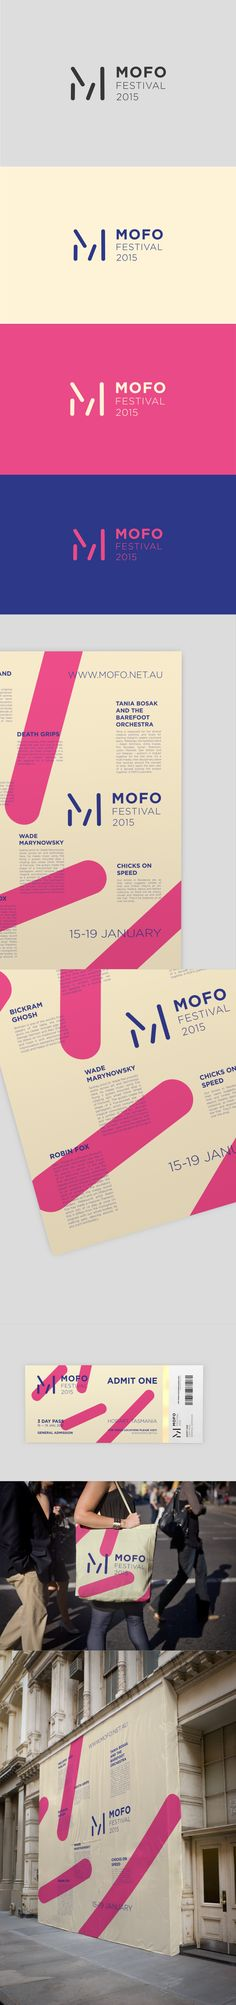 The Museum of Old and New Art: Festival Of Music and Art, http://harleyjackman.com/portfolio/mofo-festival/